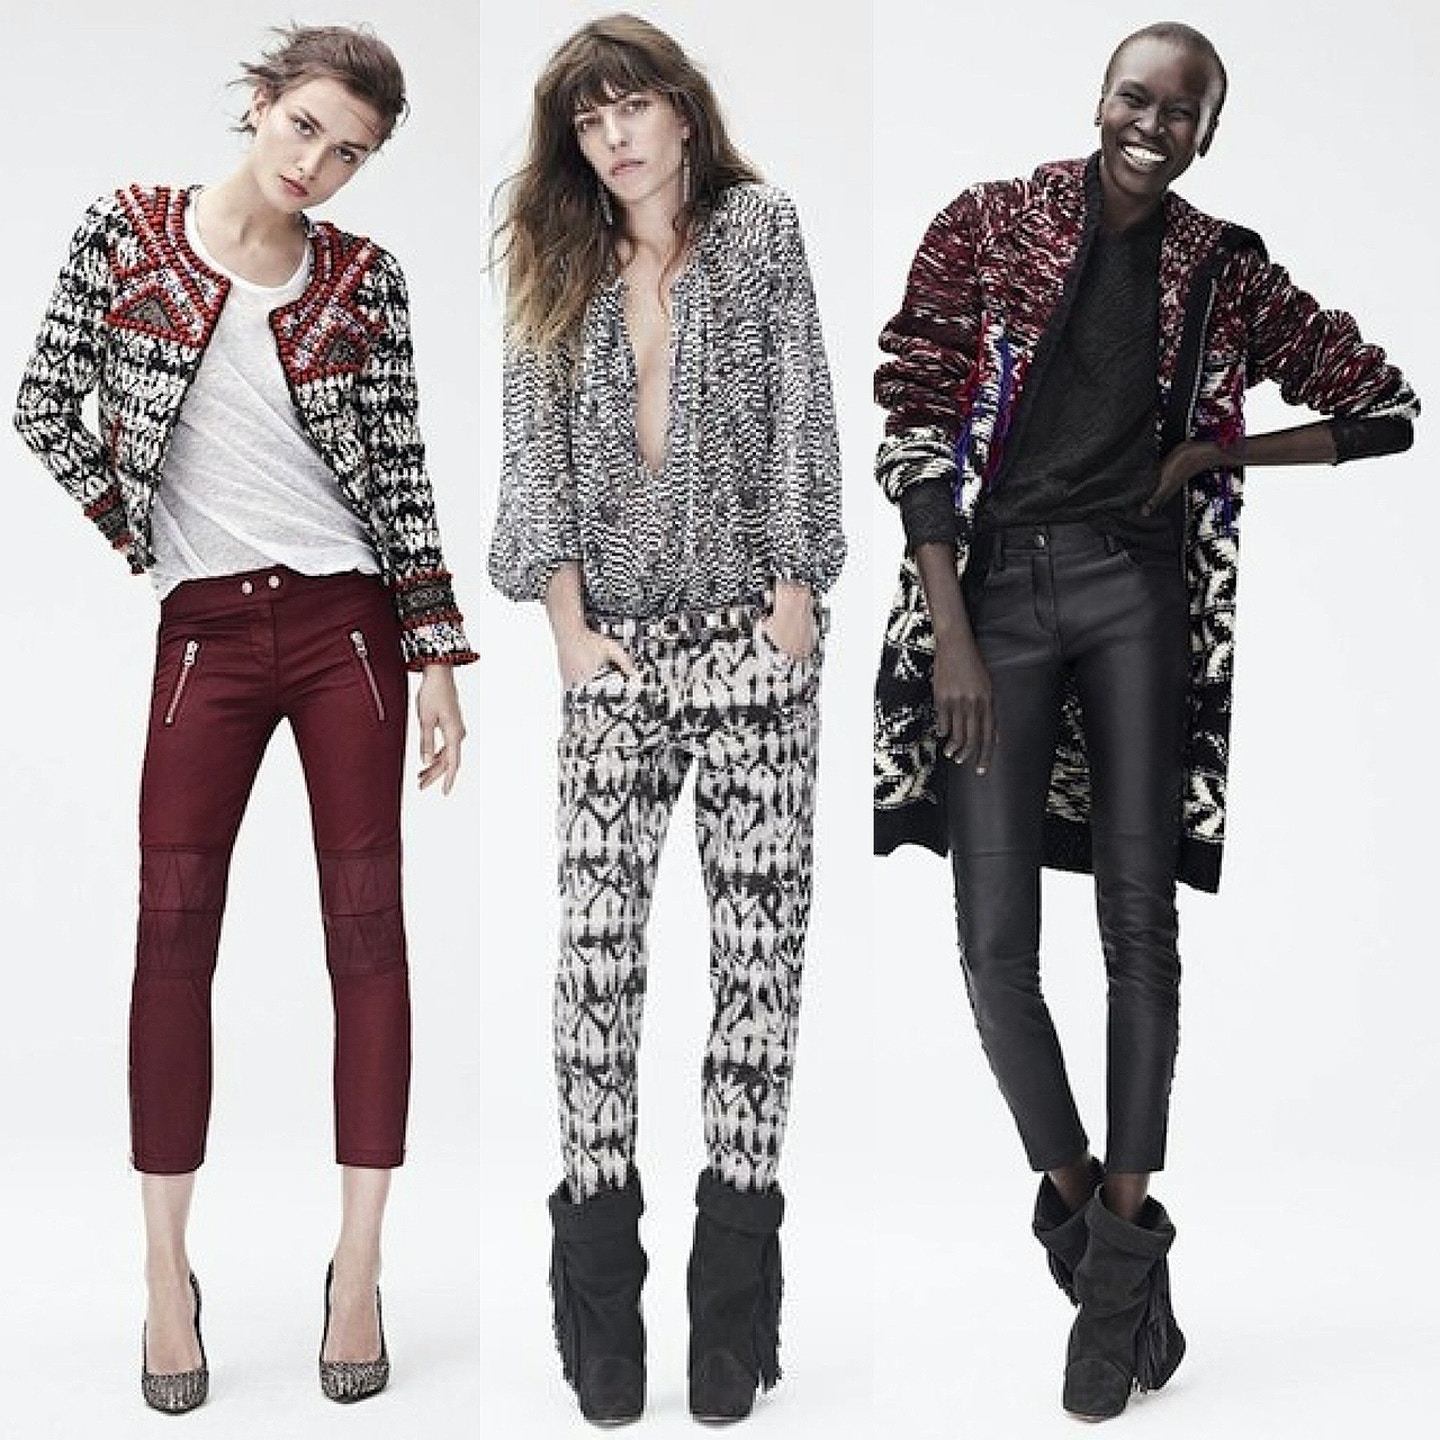 Isabel Marant for H&M – My picks